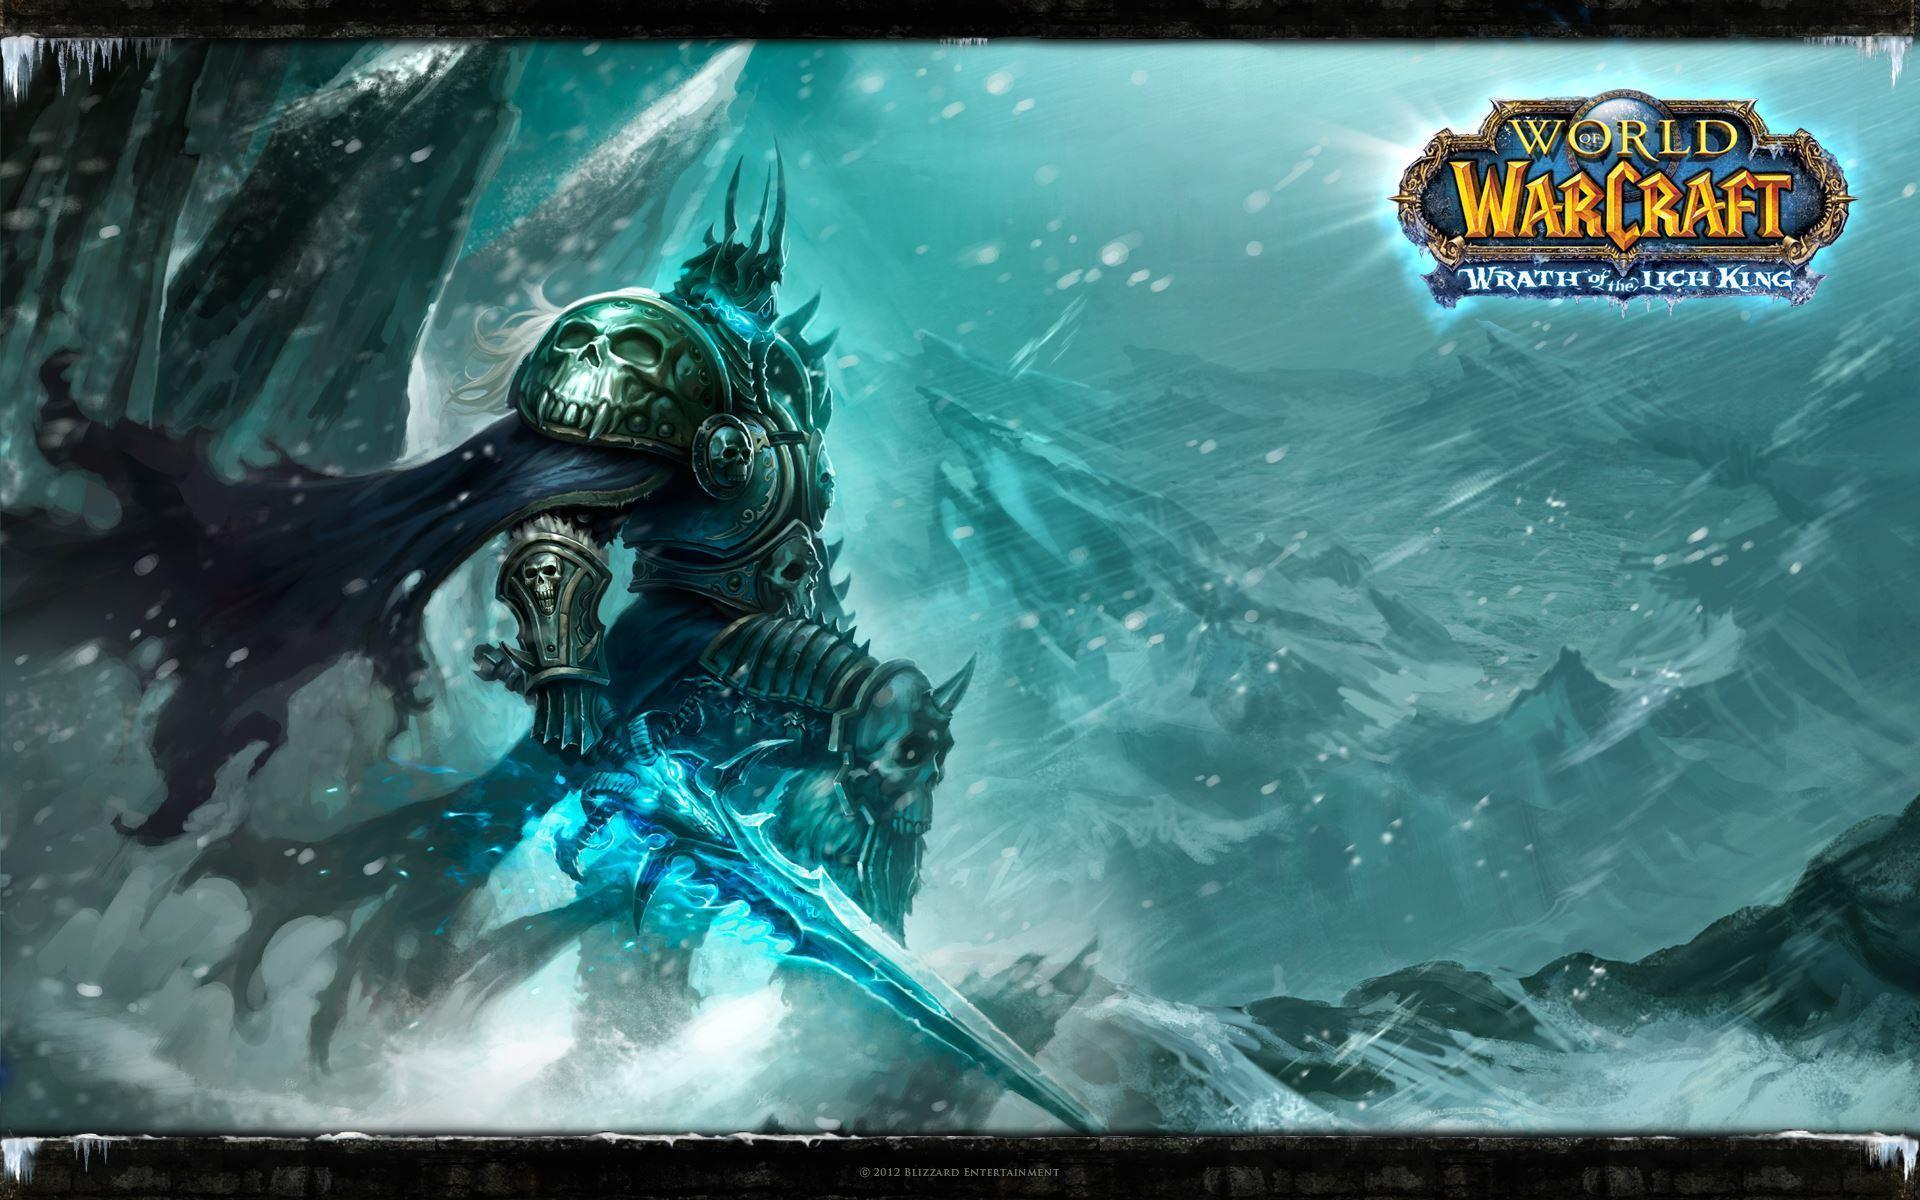 World Of Warcraft: Wrath Of The Lich King Computer Wallpapers ...